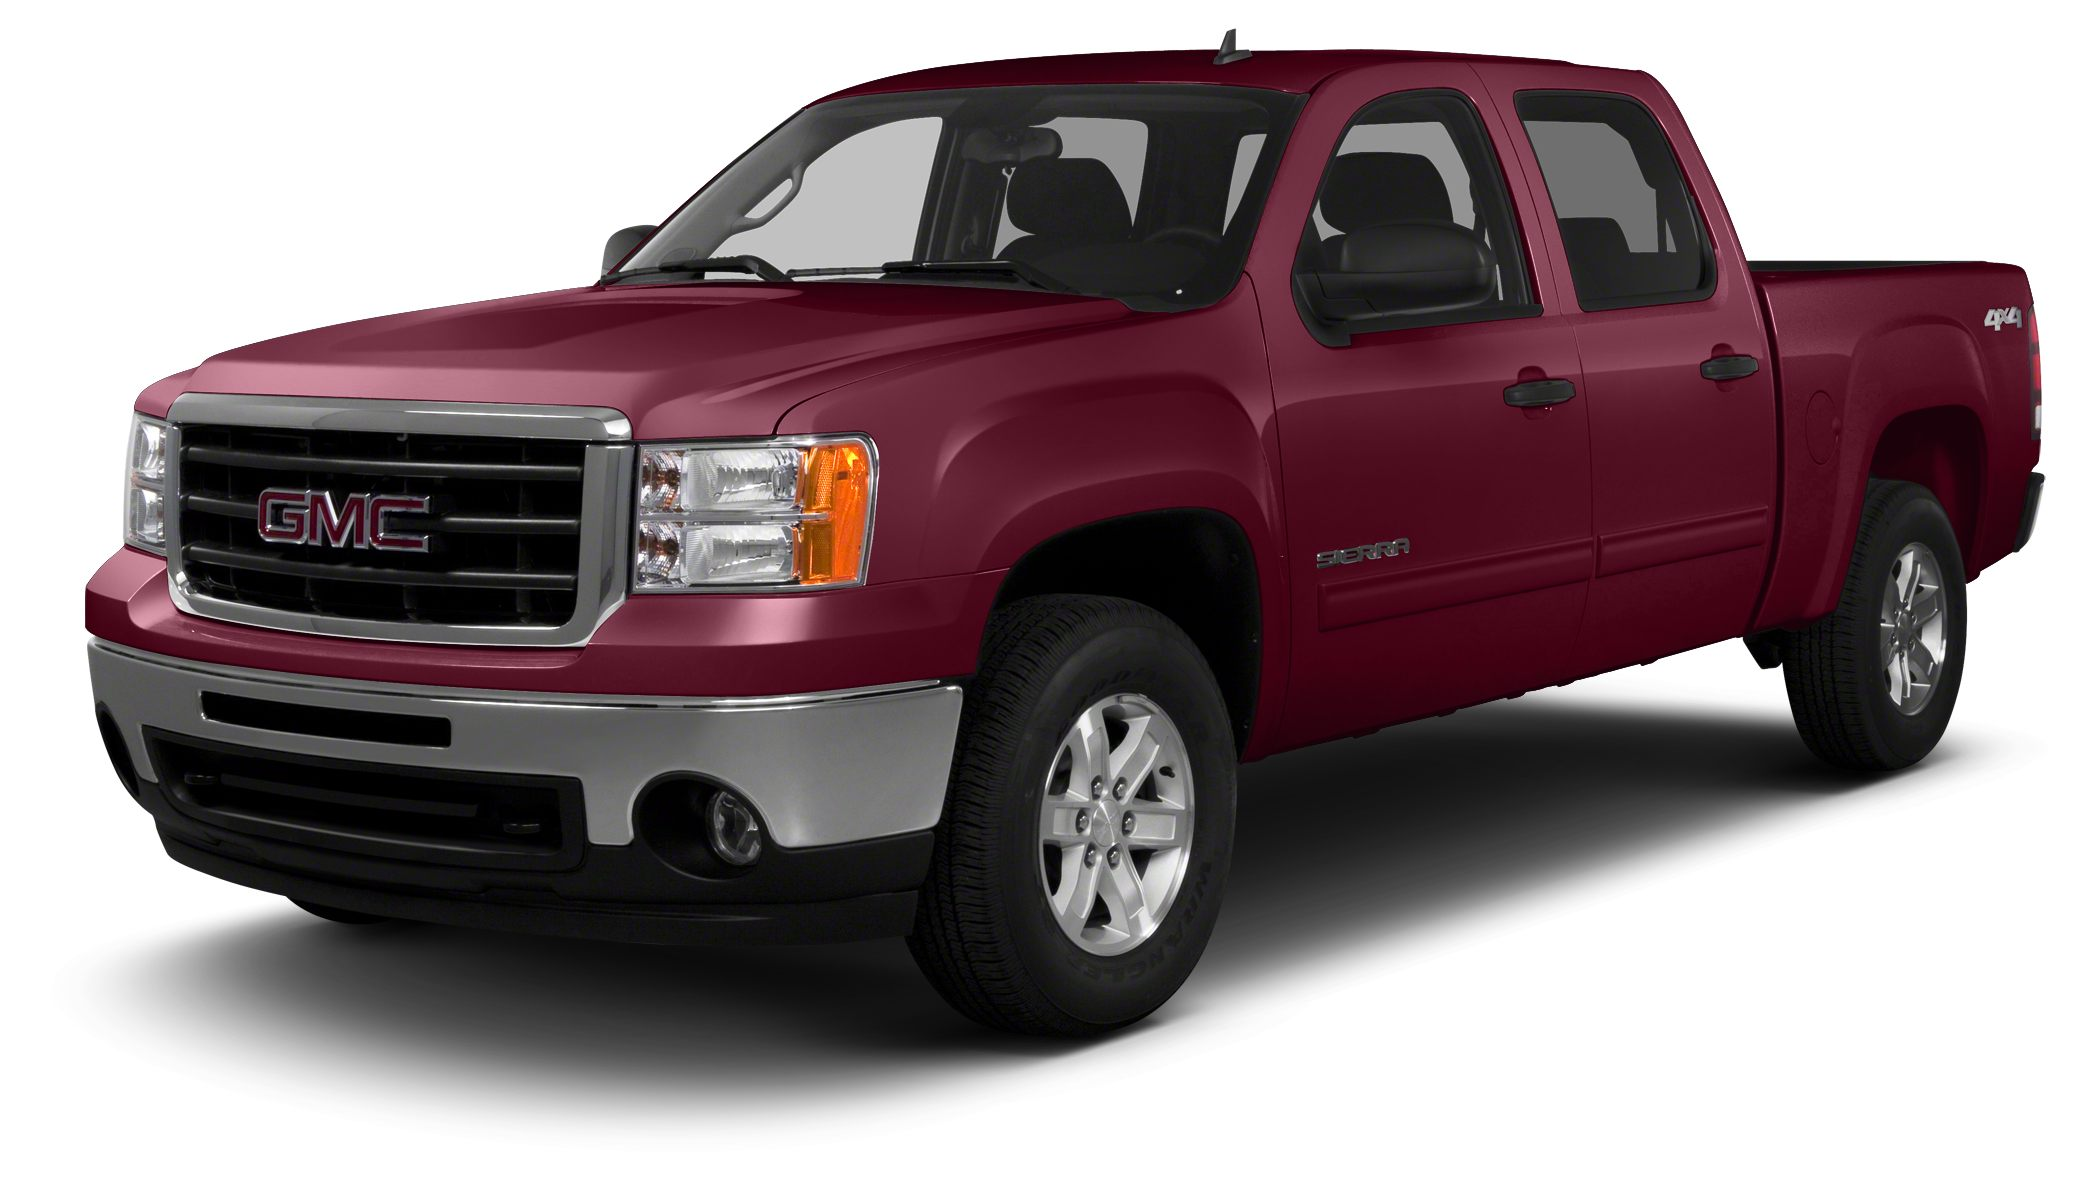 2013 GMC Sierra 1500 SLE This ready-for-anything Vehicle with its grippy 4WD will handle anything